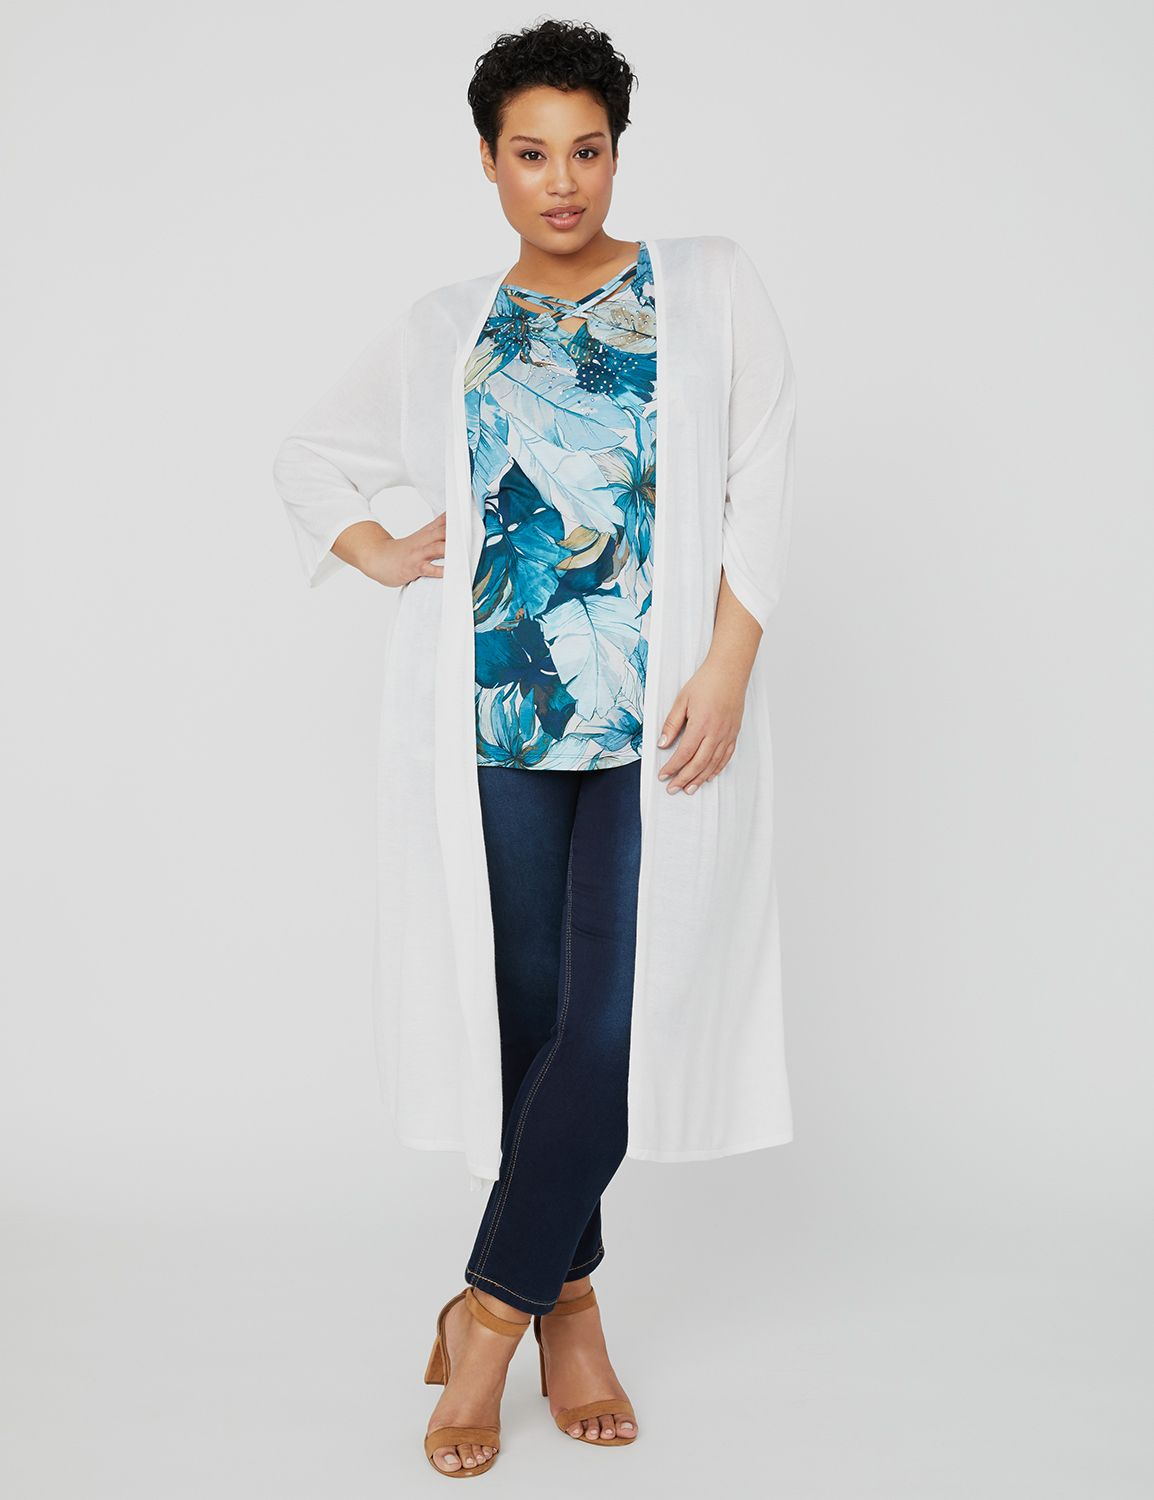 Ocean Waves Cardigan 1087803 Convertible Cardigan MP-300098483